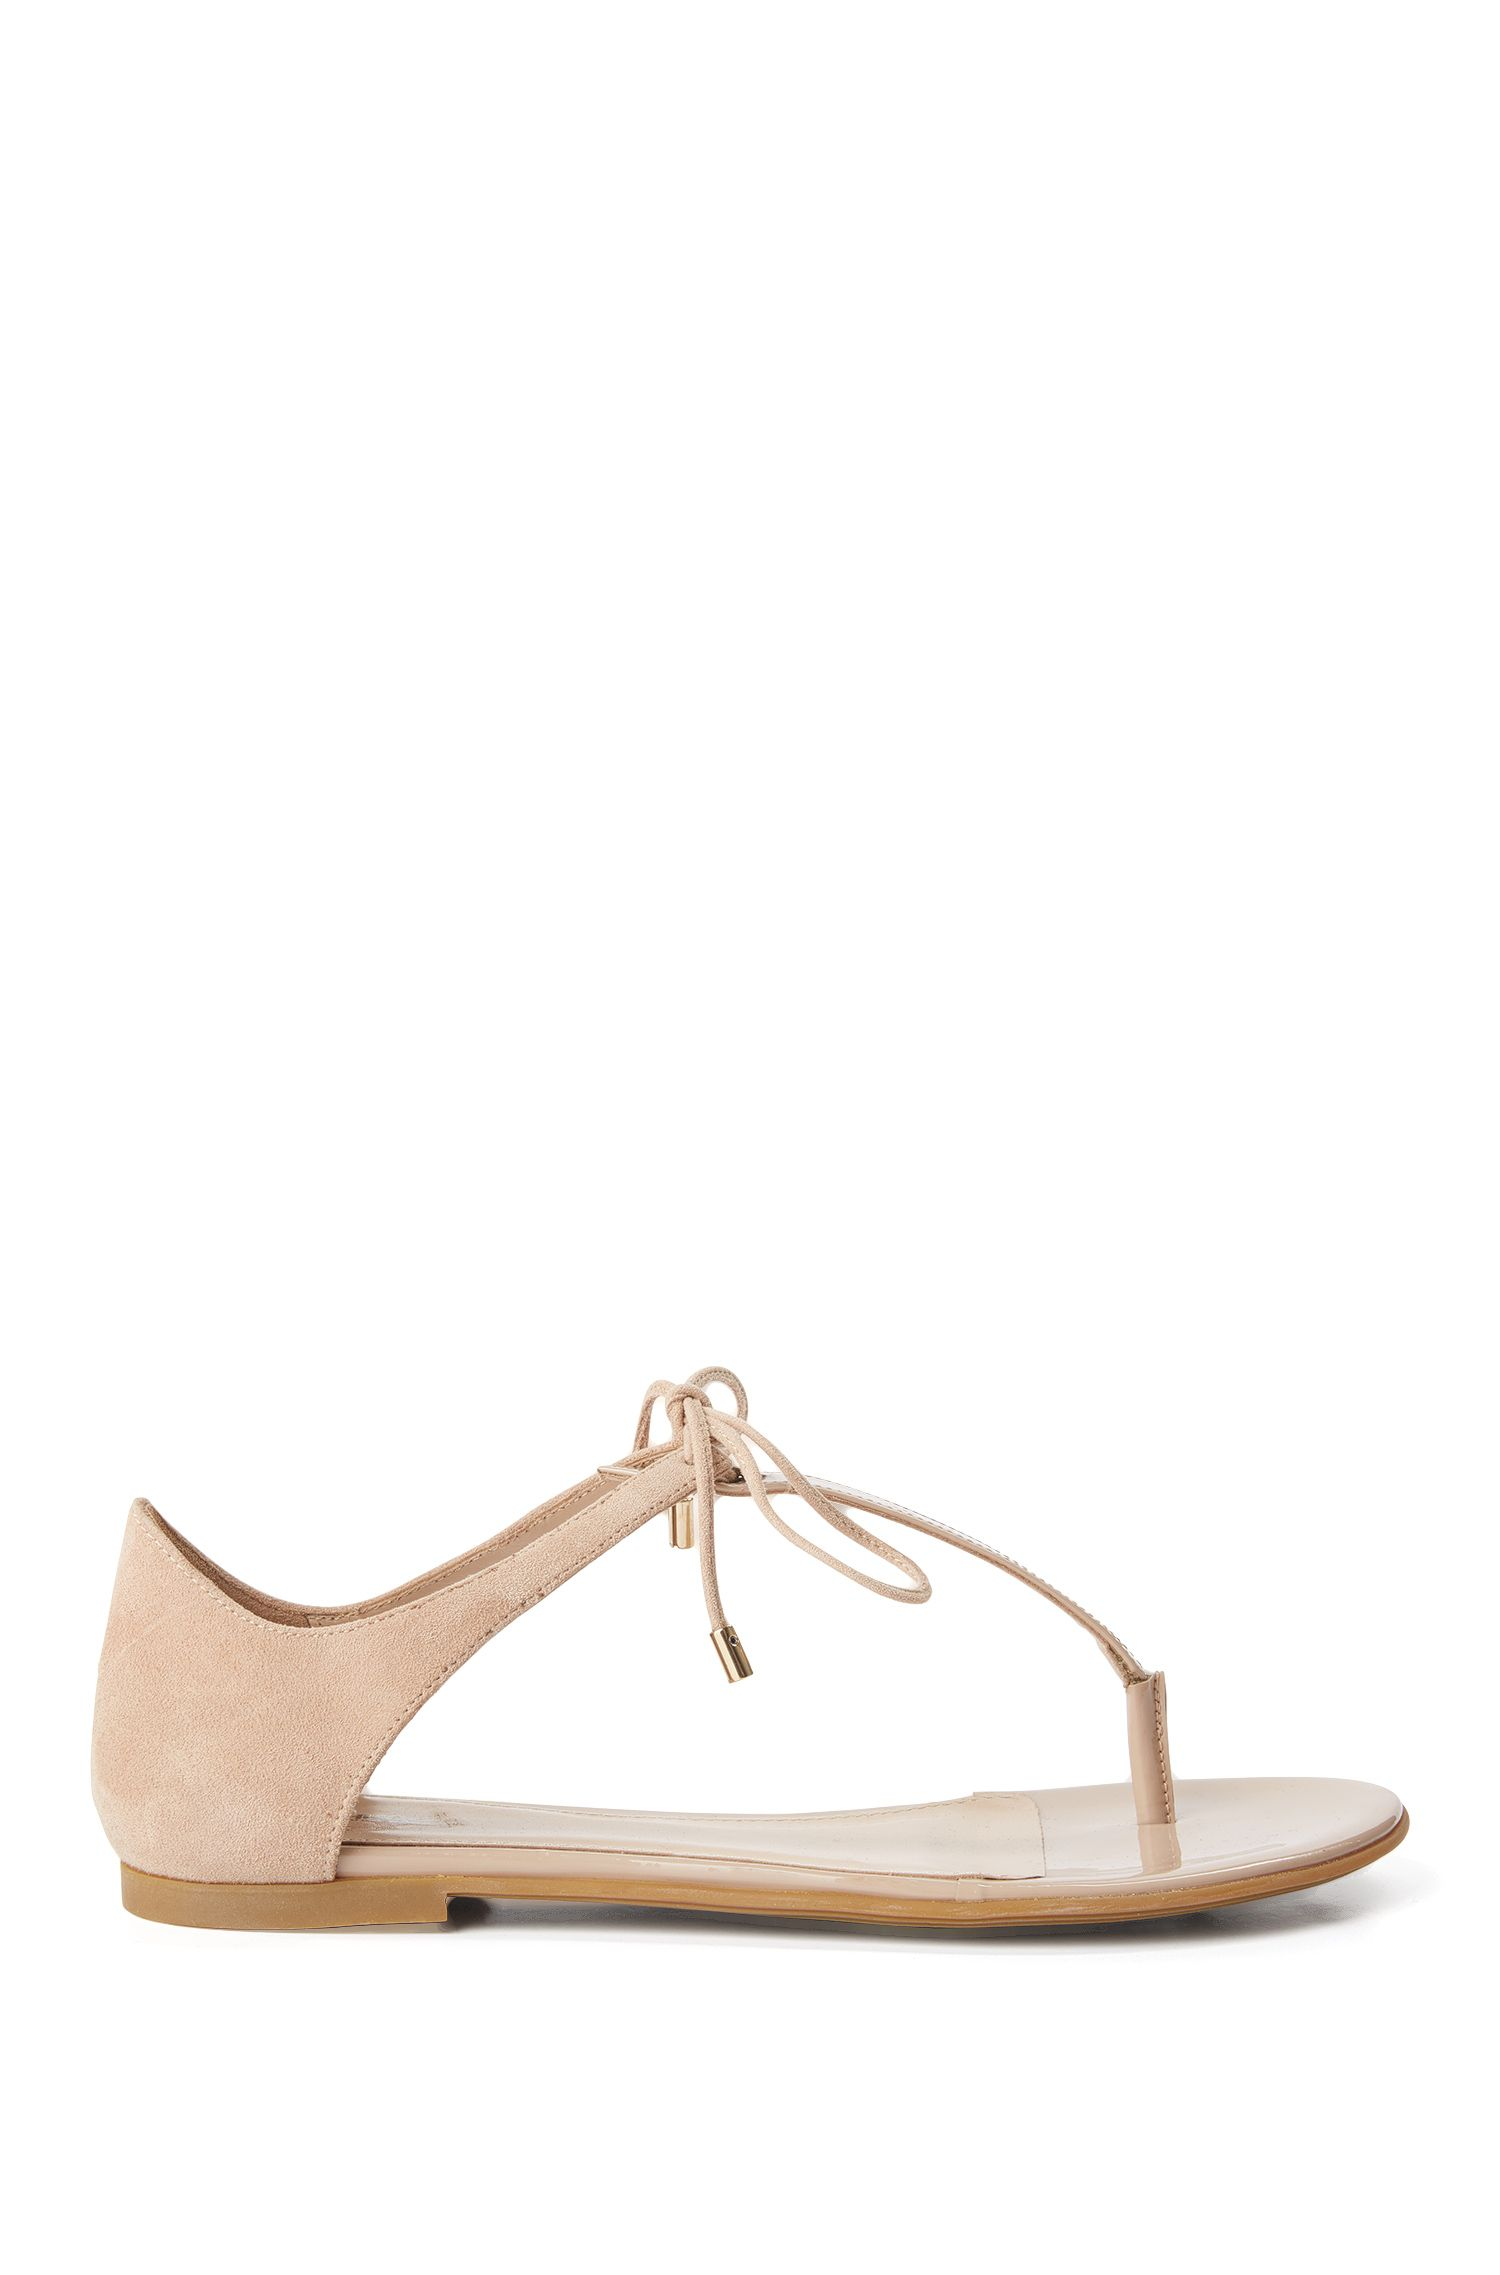 Leather toe-separator sandals with lacing detail: 'Felicity'